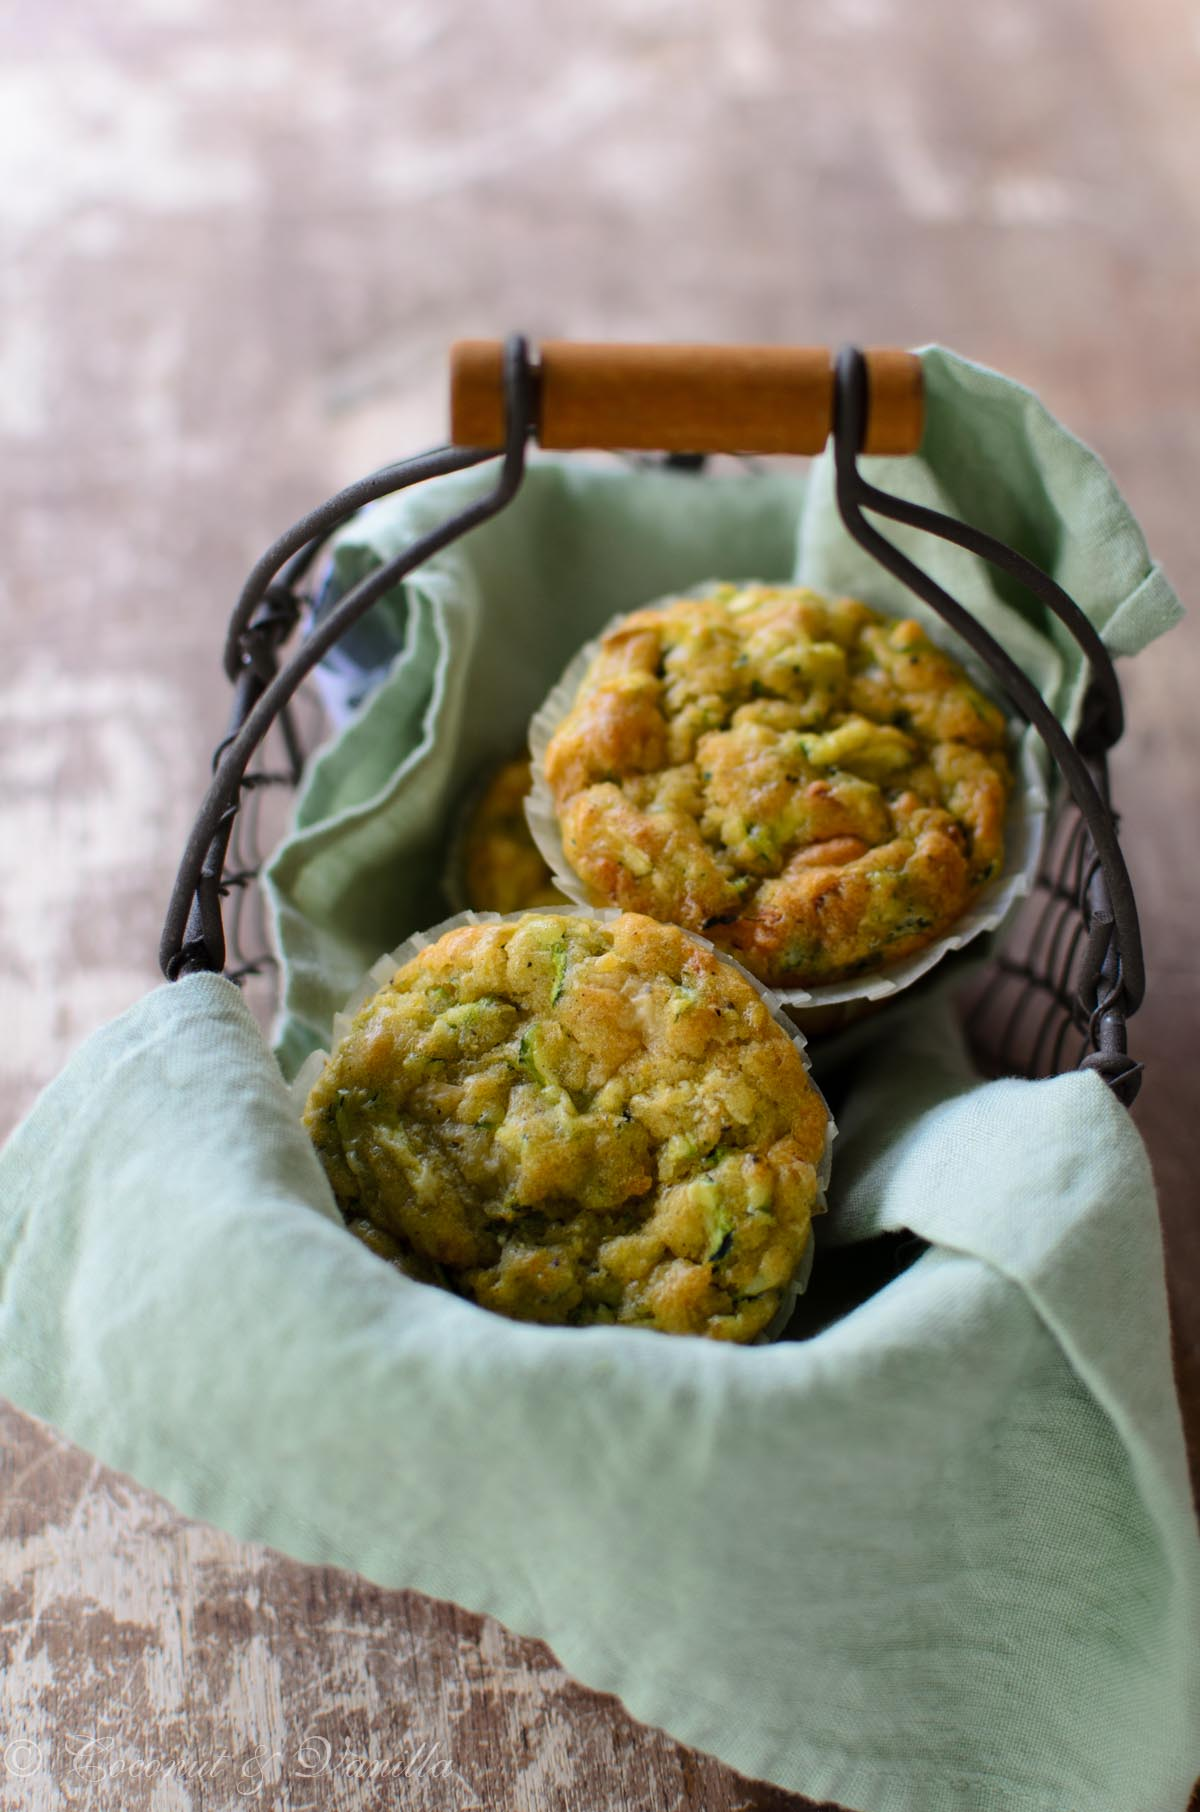 Zucchini Muffins with Parmesan and Olive Oil